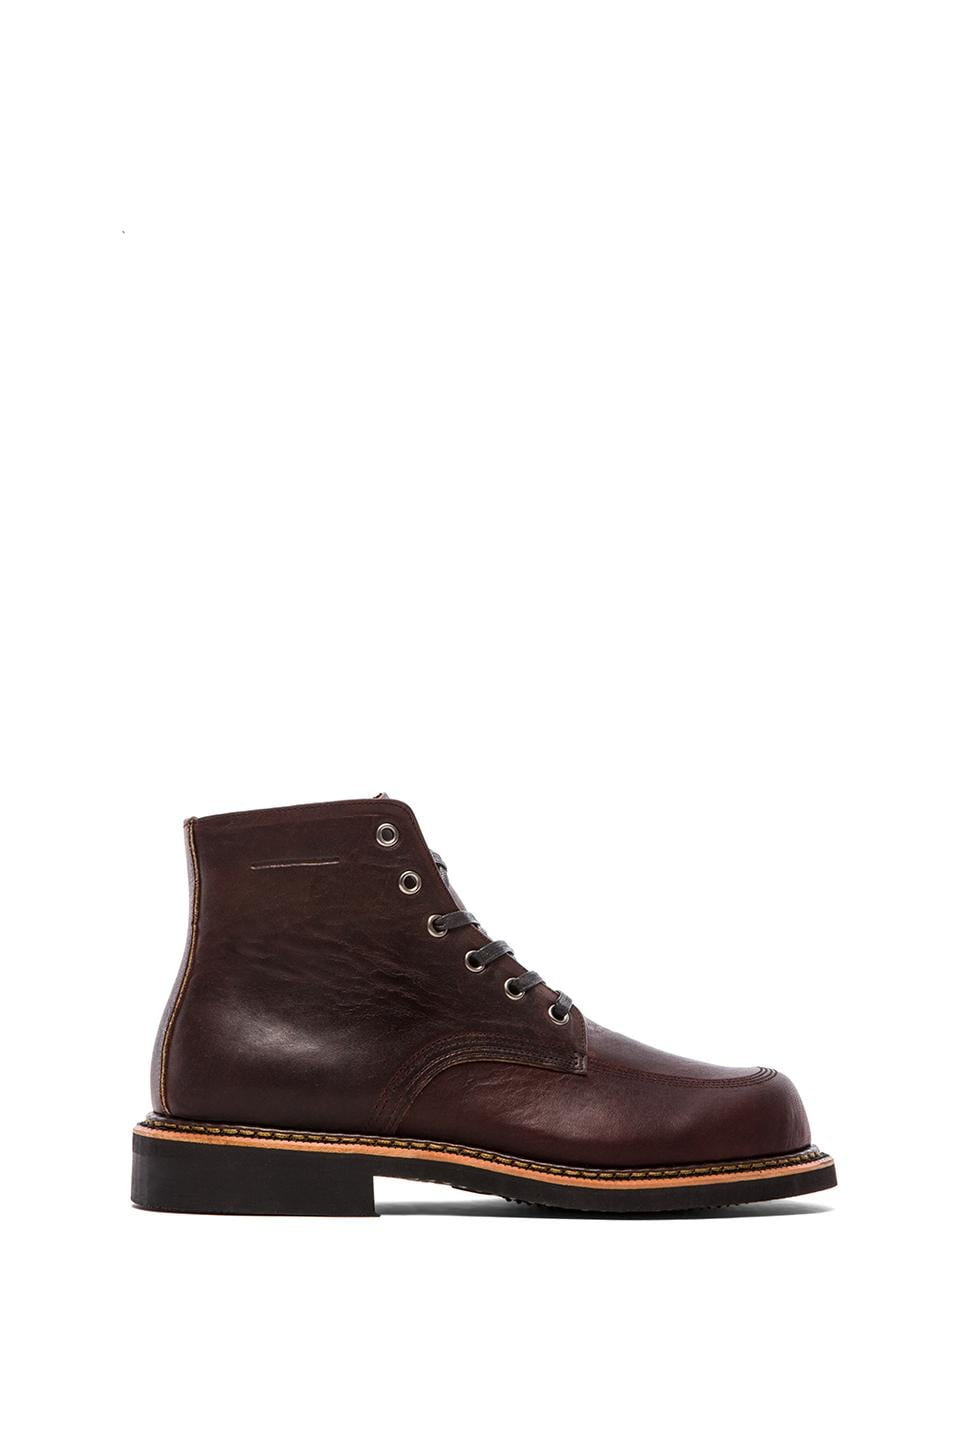 Broken Homme Davis Boot in Oxblood